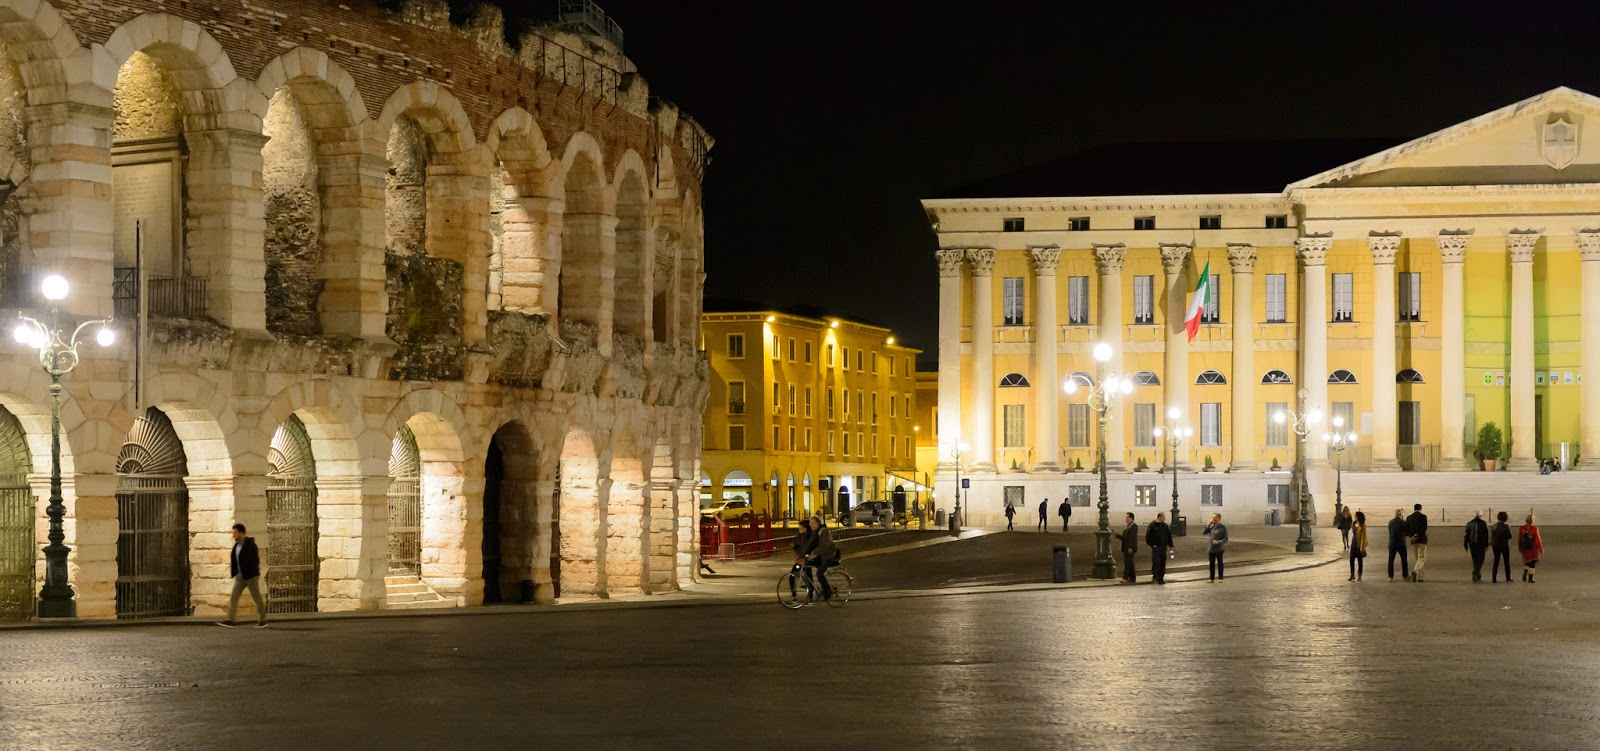 The Piazza Brà and 2,000-year-old Arena in Verona, Italy. Photo: Alessandro Caproni.